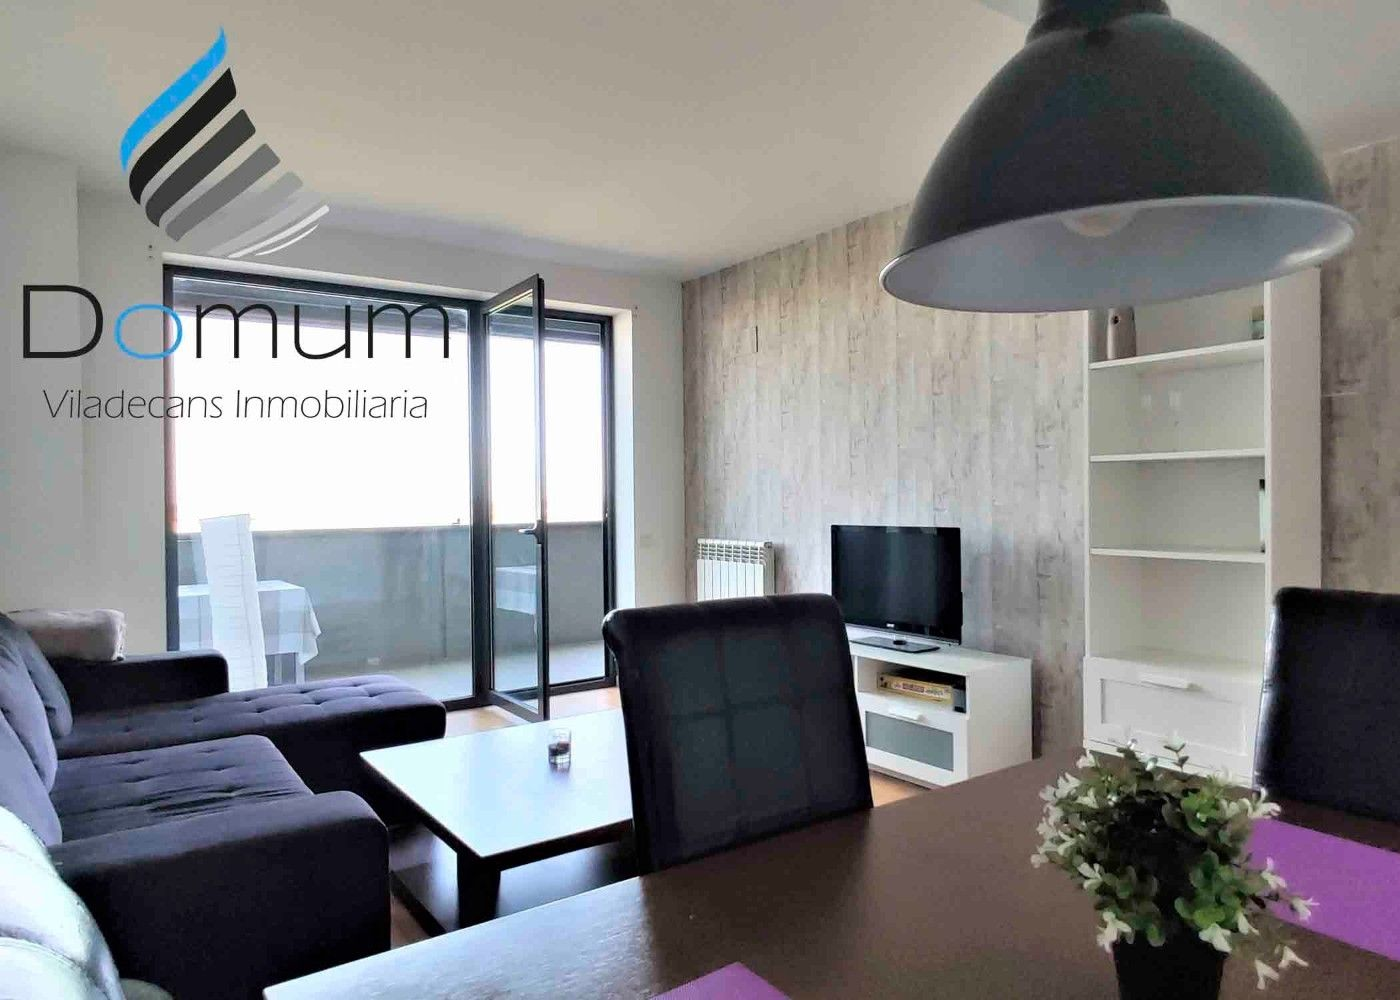 Location Appartement  Avinguda olof palme. Exclusivo alquiler en vilamarina